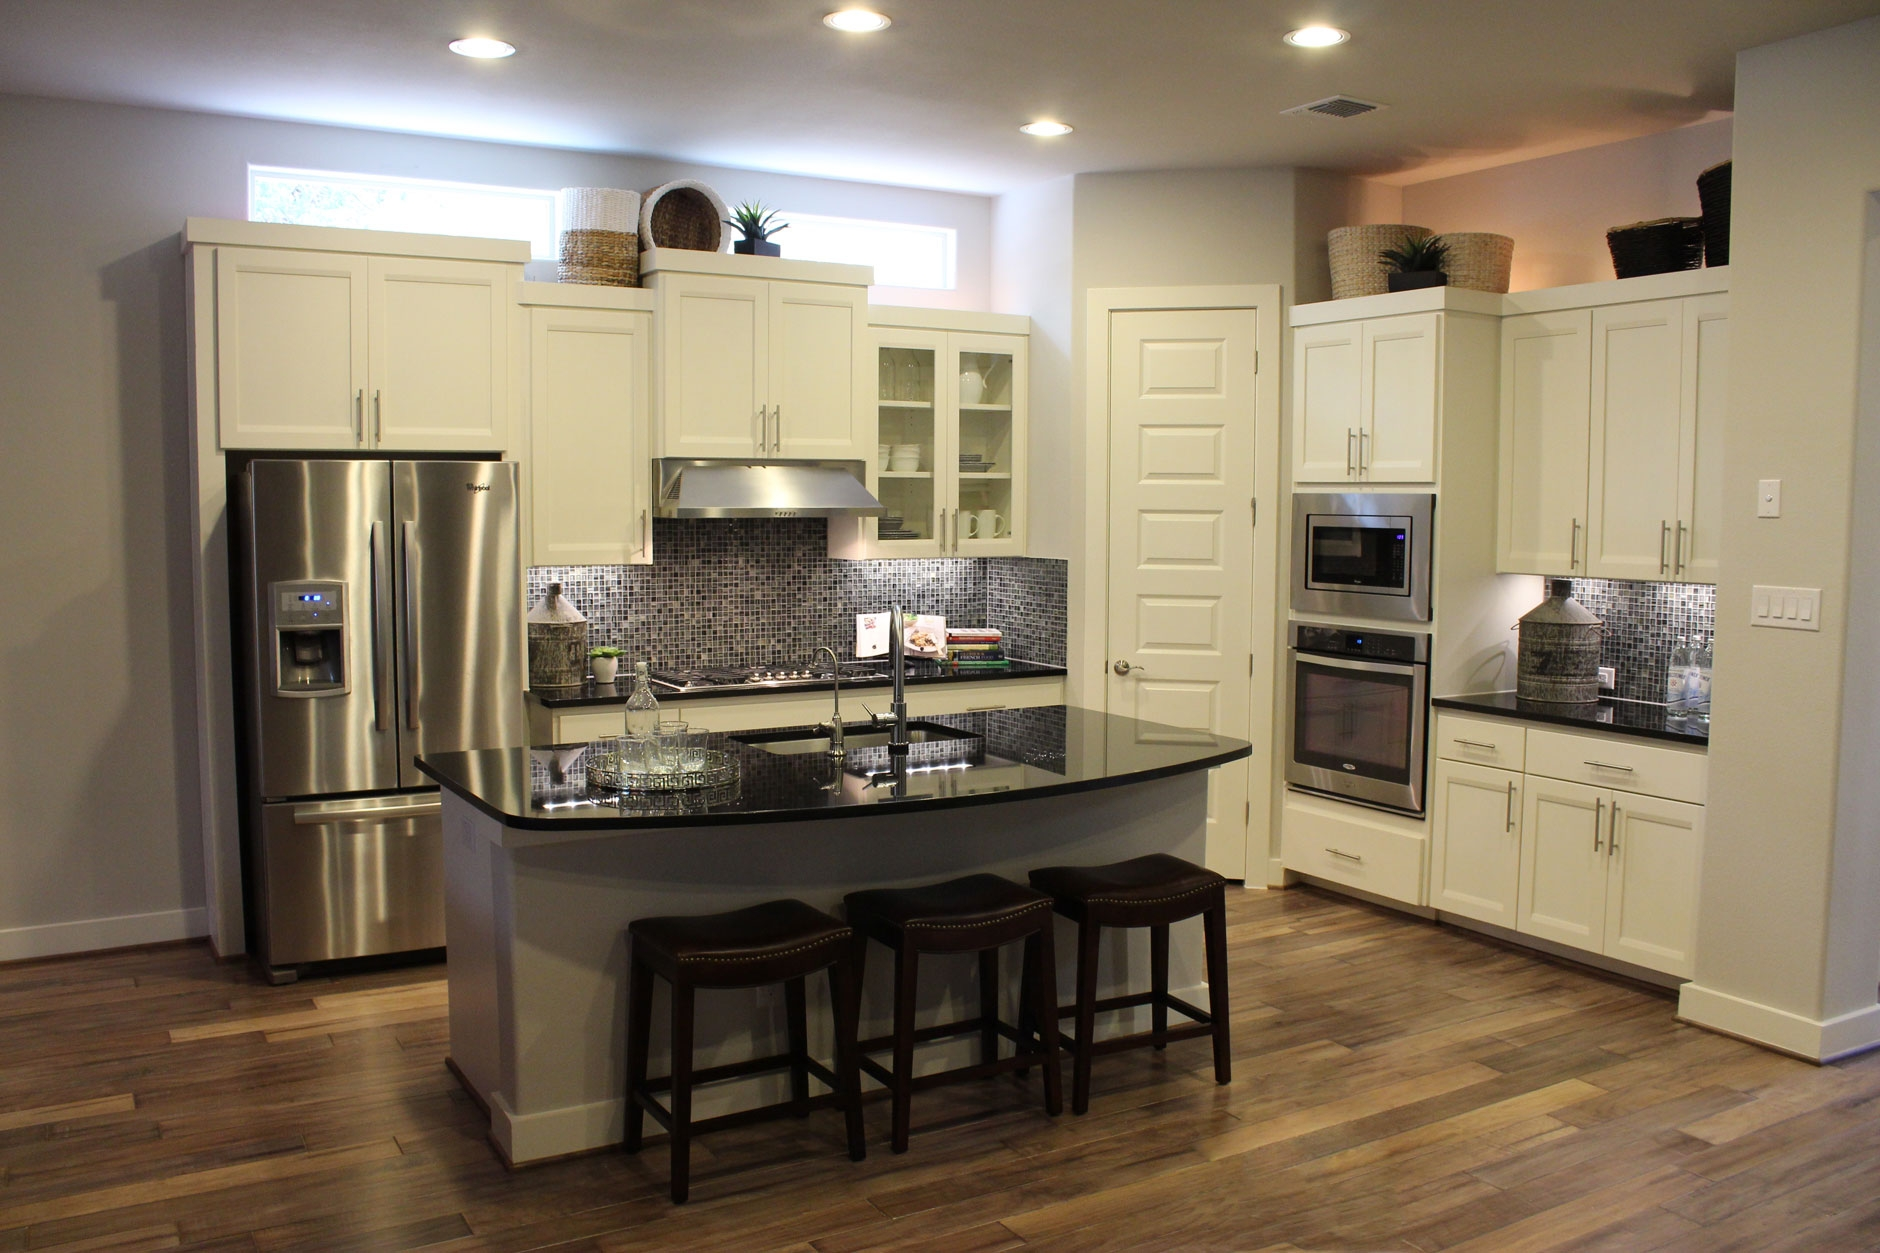 Kitchen Cabinets And Flooring Photos